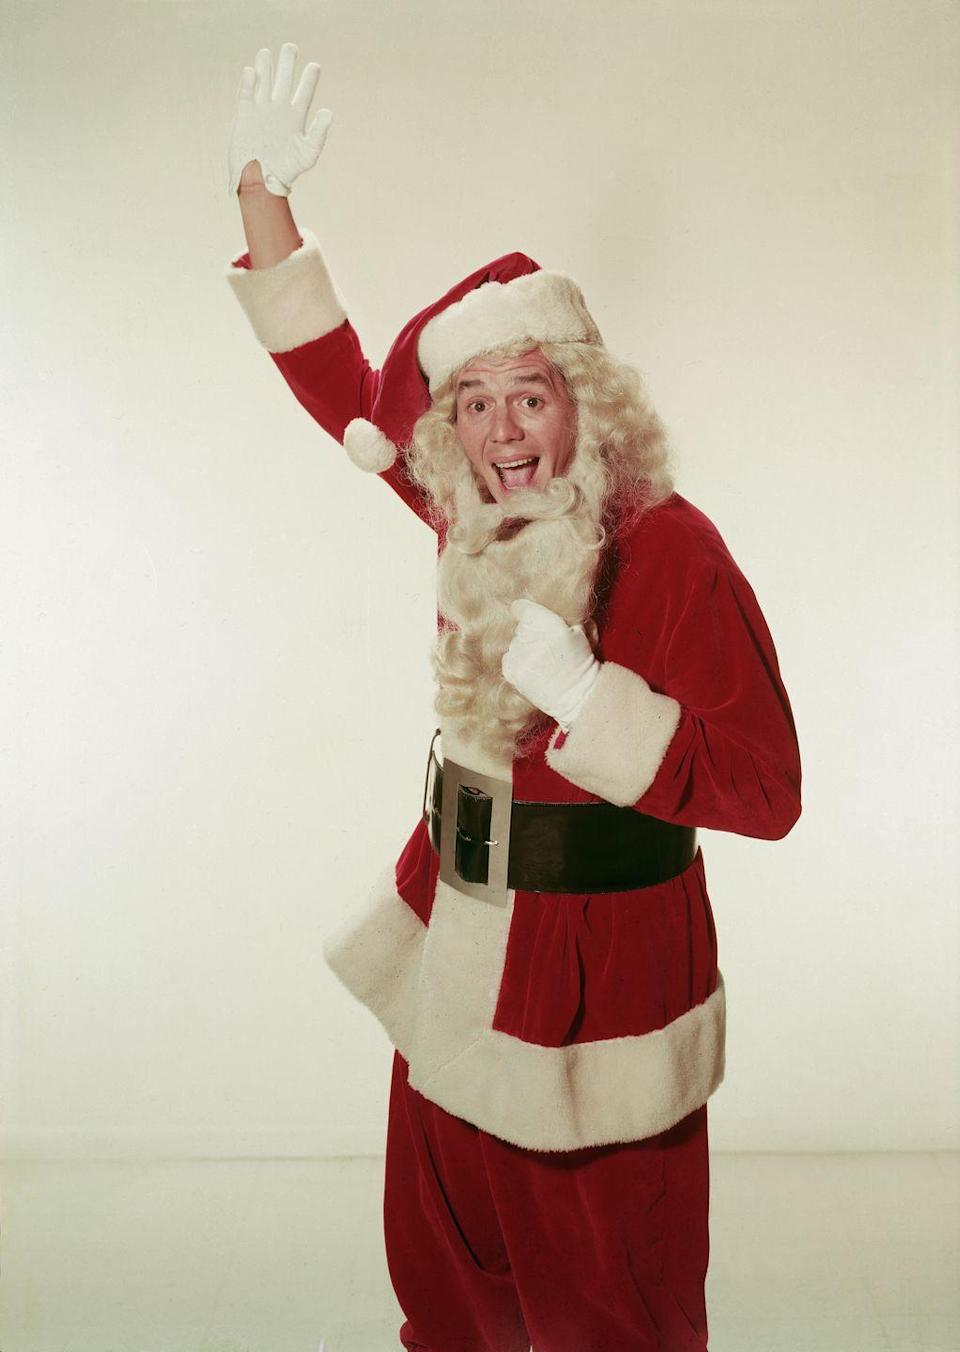 "<p>The <em>I Love Lucy </em>star got into the holiday spirit by dressing like Santa in 1955. The Cuban musician and actor even gave the camera a wave, revealing his true identity to fans. </p><p><strong>RELATED:</strong> <a href=""https://www.goodhousekeeping.com/life/entertainment/g33332561/photos-of-lucille-ball-on-set/"" rel=""nofollow noopener"" target=""_blank"" data-ylk=""slk:40 Rare Photos of Lucille Ball on Set Through the Years"" class=""link rapid-noclick-resp"">40 Rare Photos of Lucille Ball on Set Through the Years</a></p>"